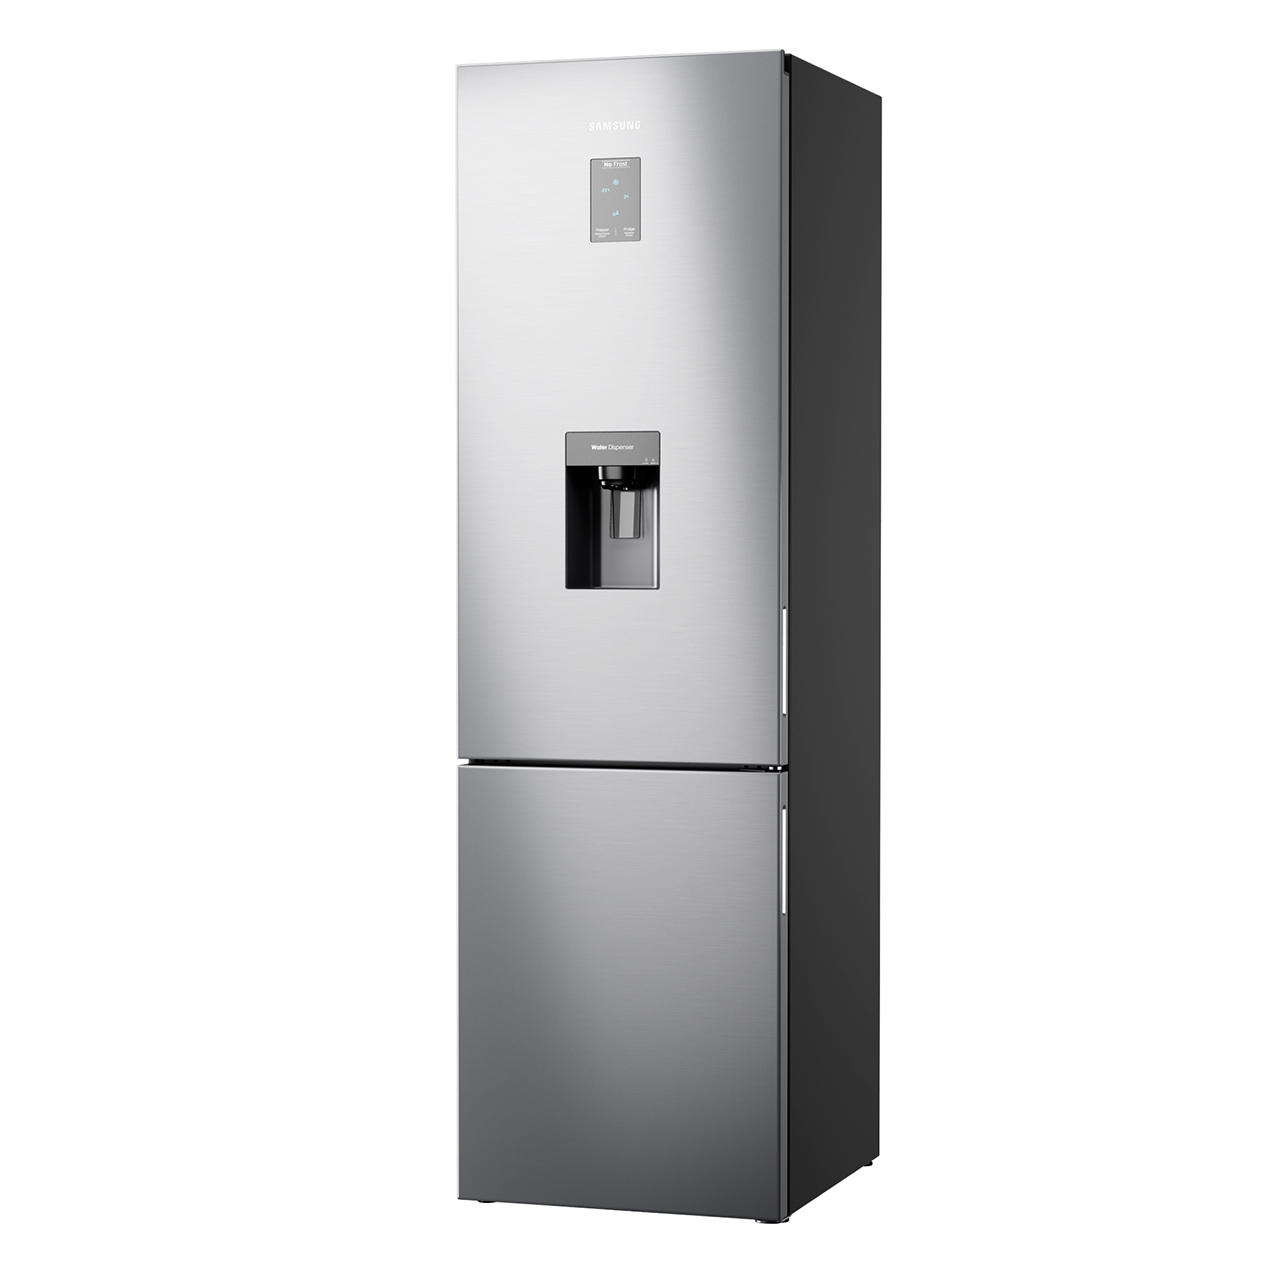 RB5000 Fridge Freezer with Water Dispenser 201 cm by Samsung